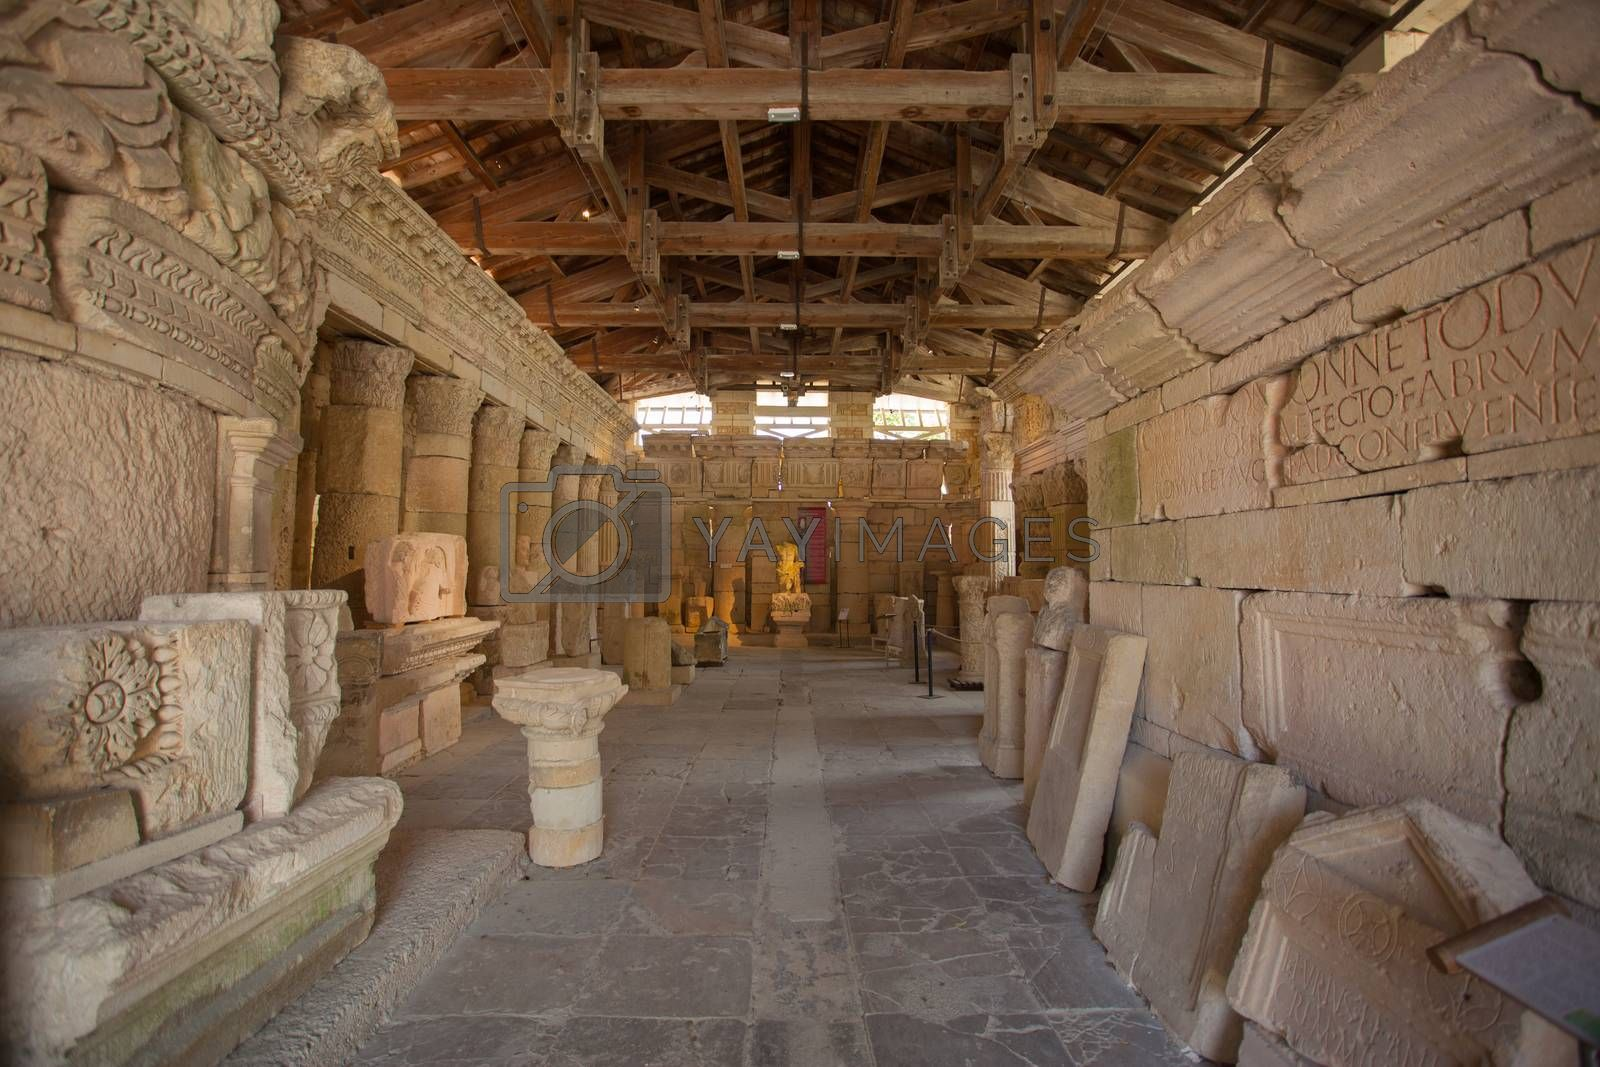 Roman archeological finds in Saintes France